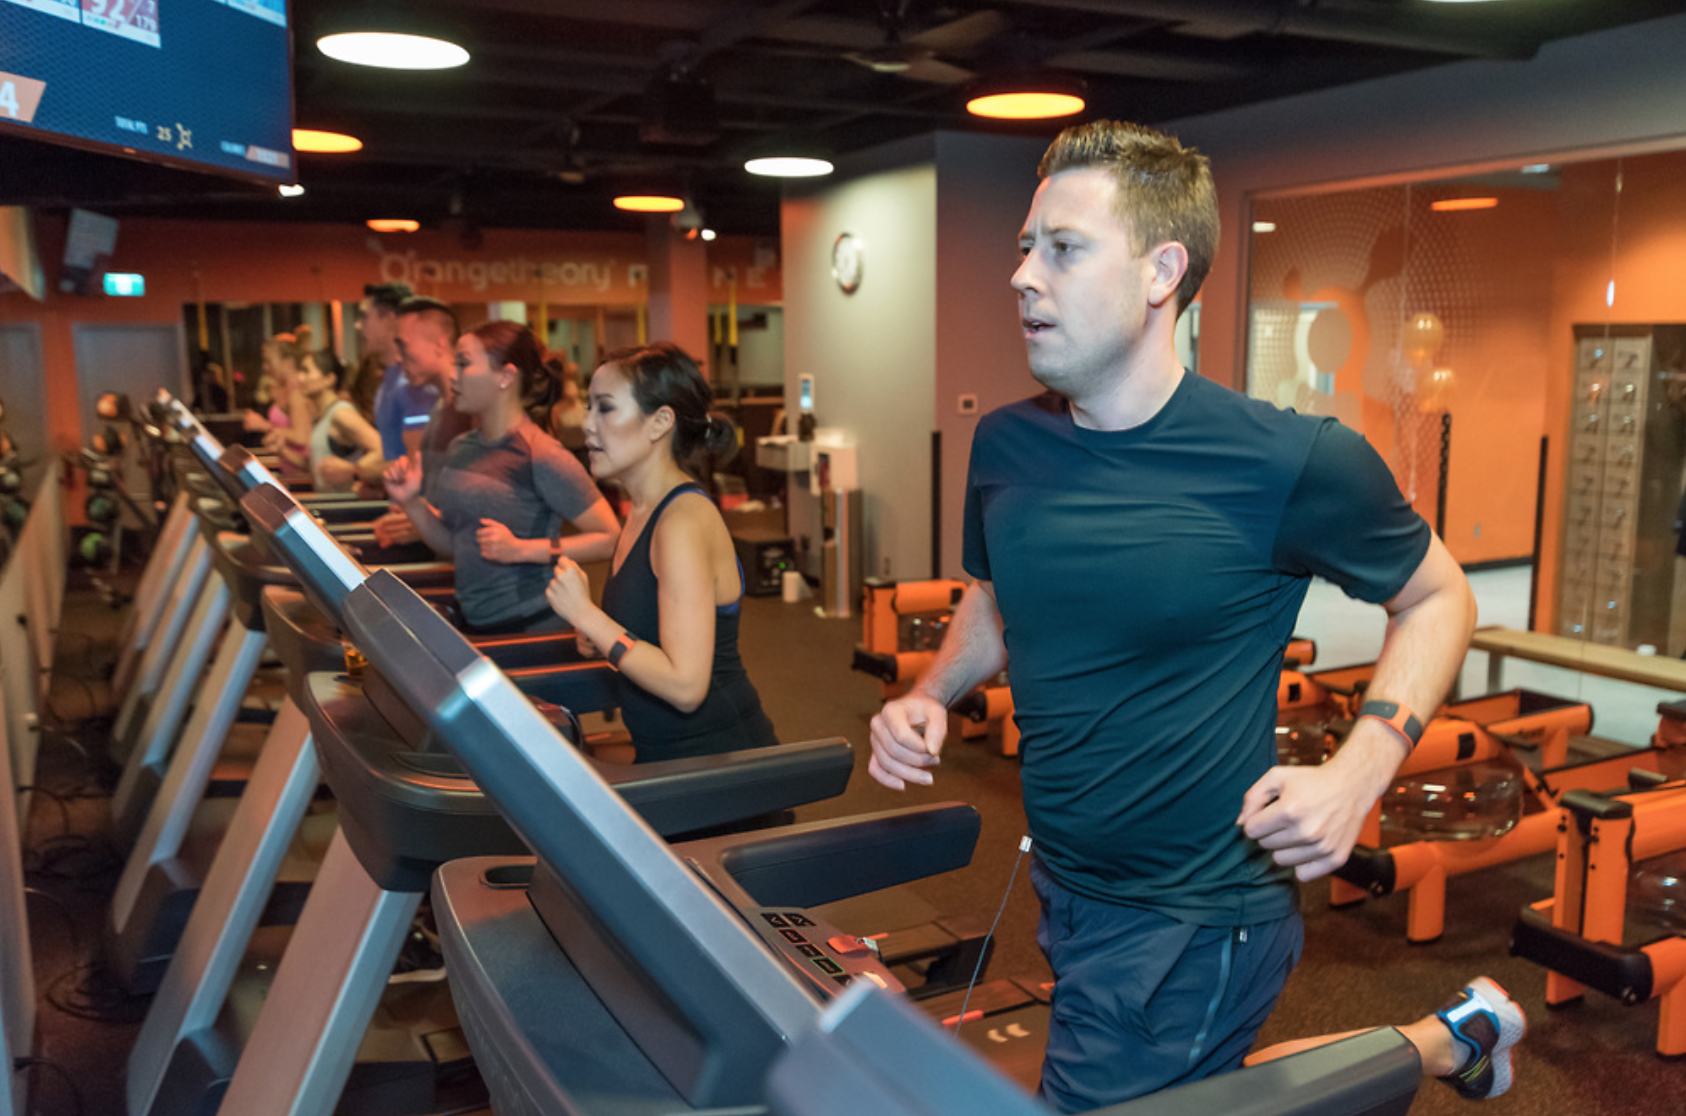 Treadmills at Orangetheory on Davie Street